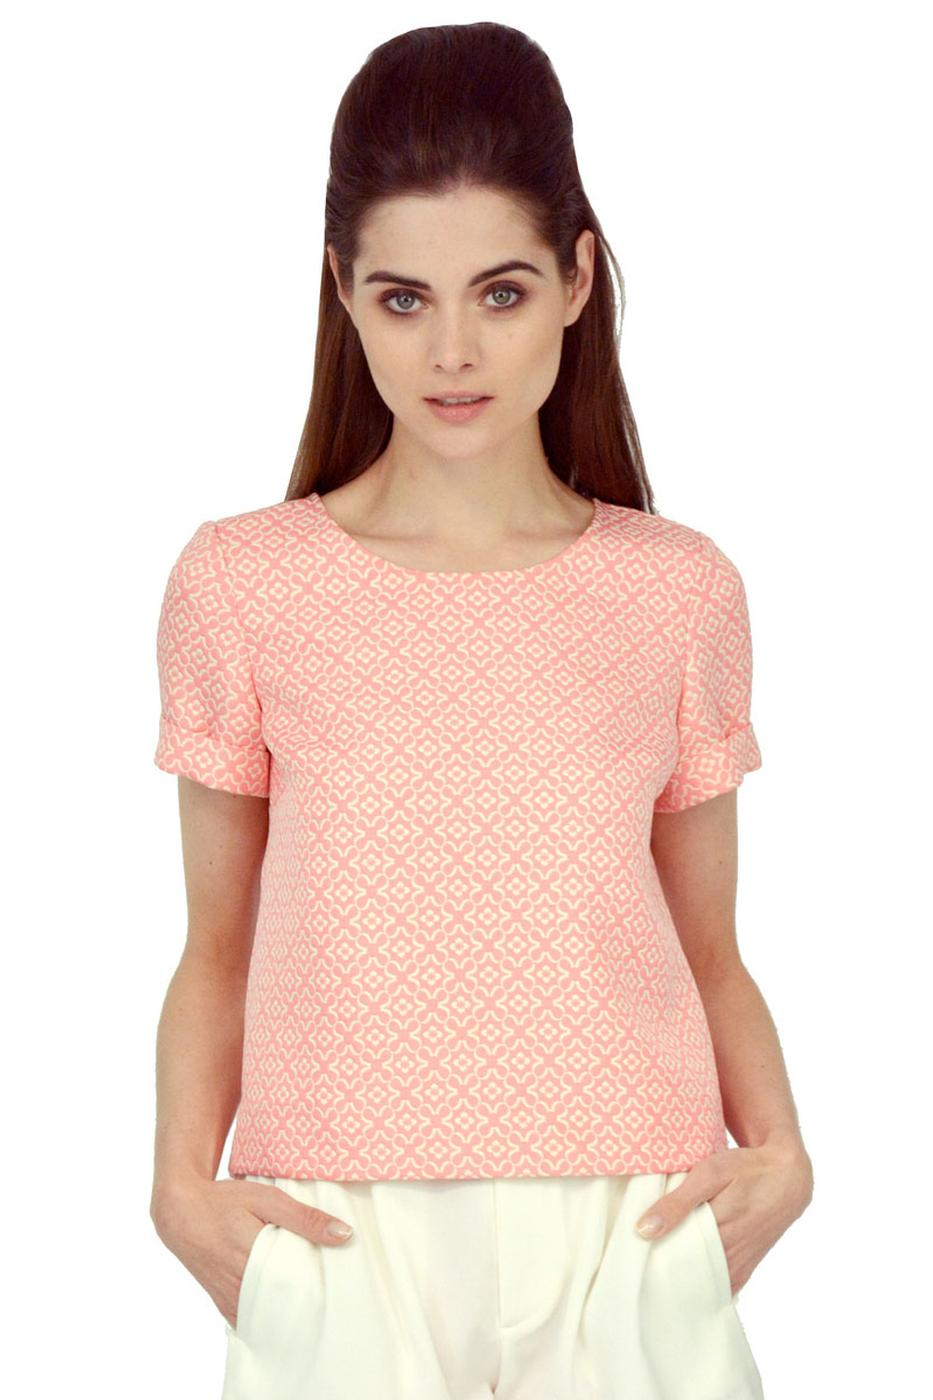 Cloud Watching TRAFFIC PEOPLE Retro 60s Boxy Top